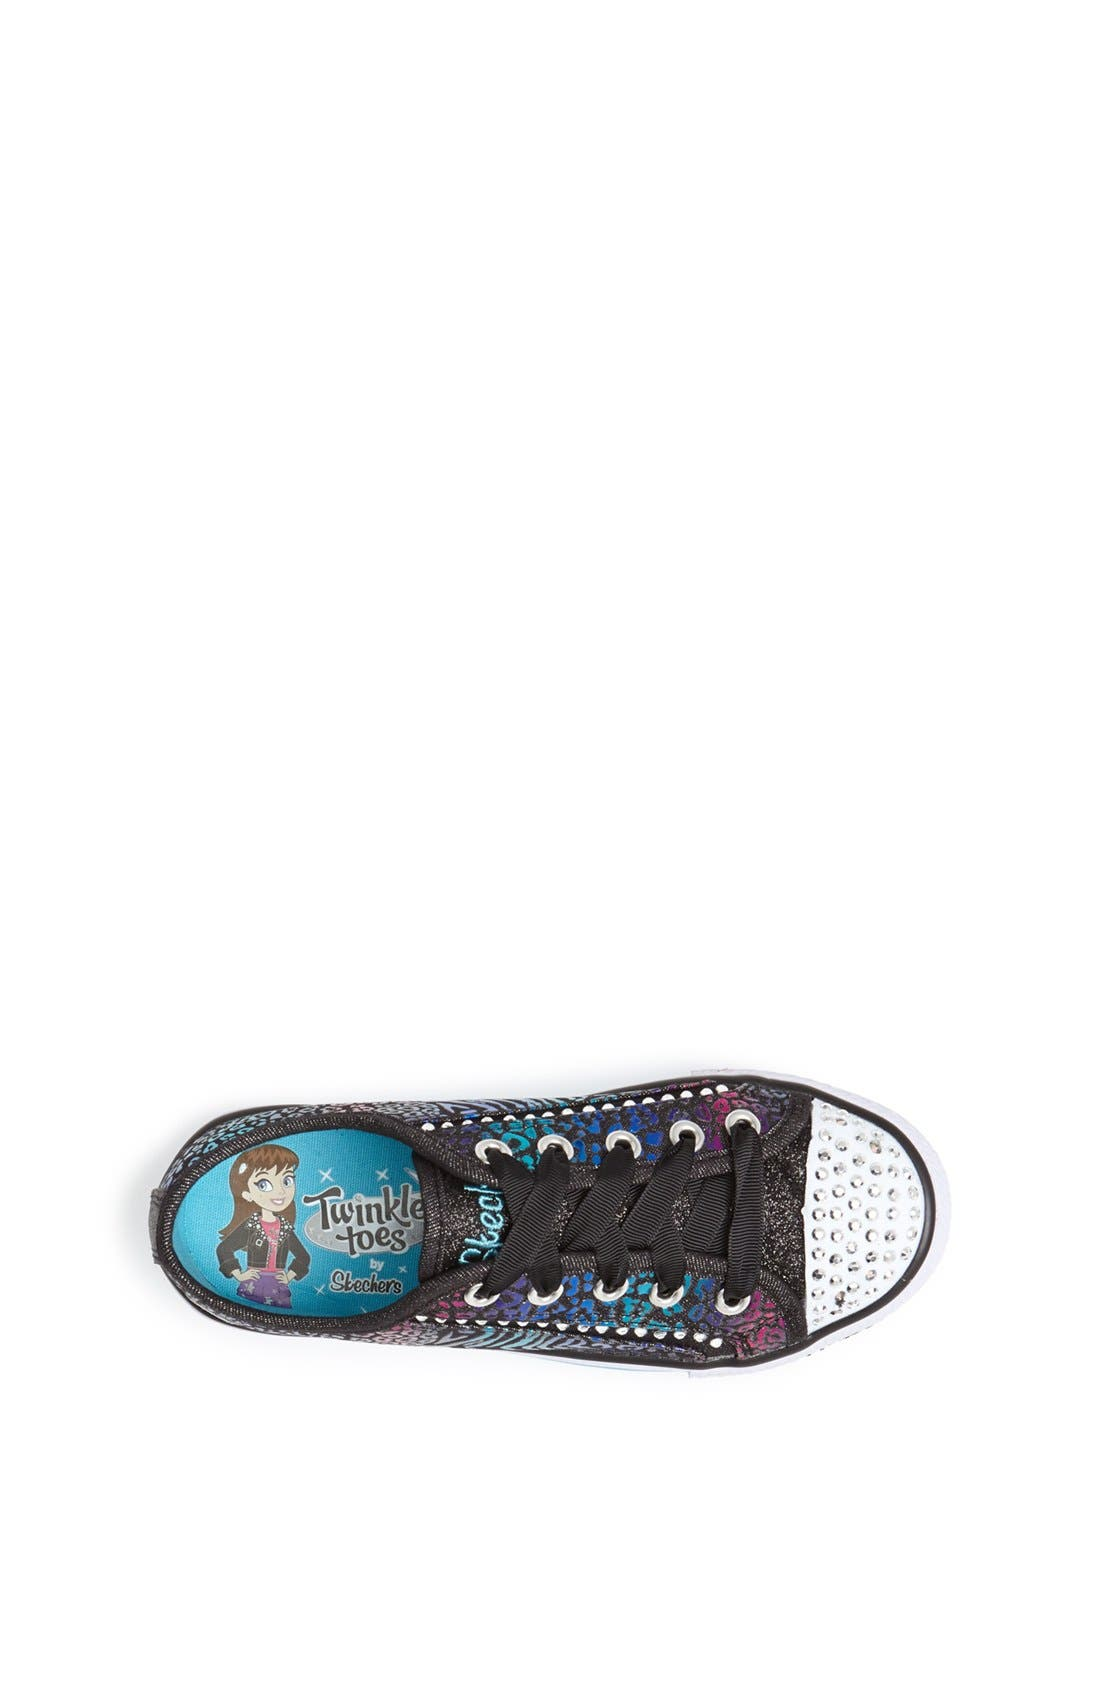 Alternate Image 3  - SKECHERS 'Shuffles - Gimme Glam' Light Up Sneaker (Toddler, Little Kid & Big Kid)